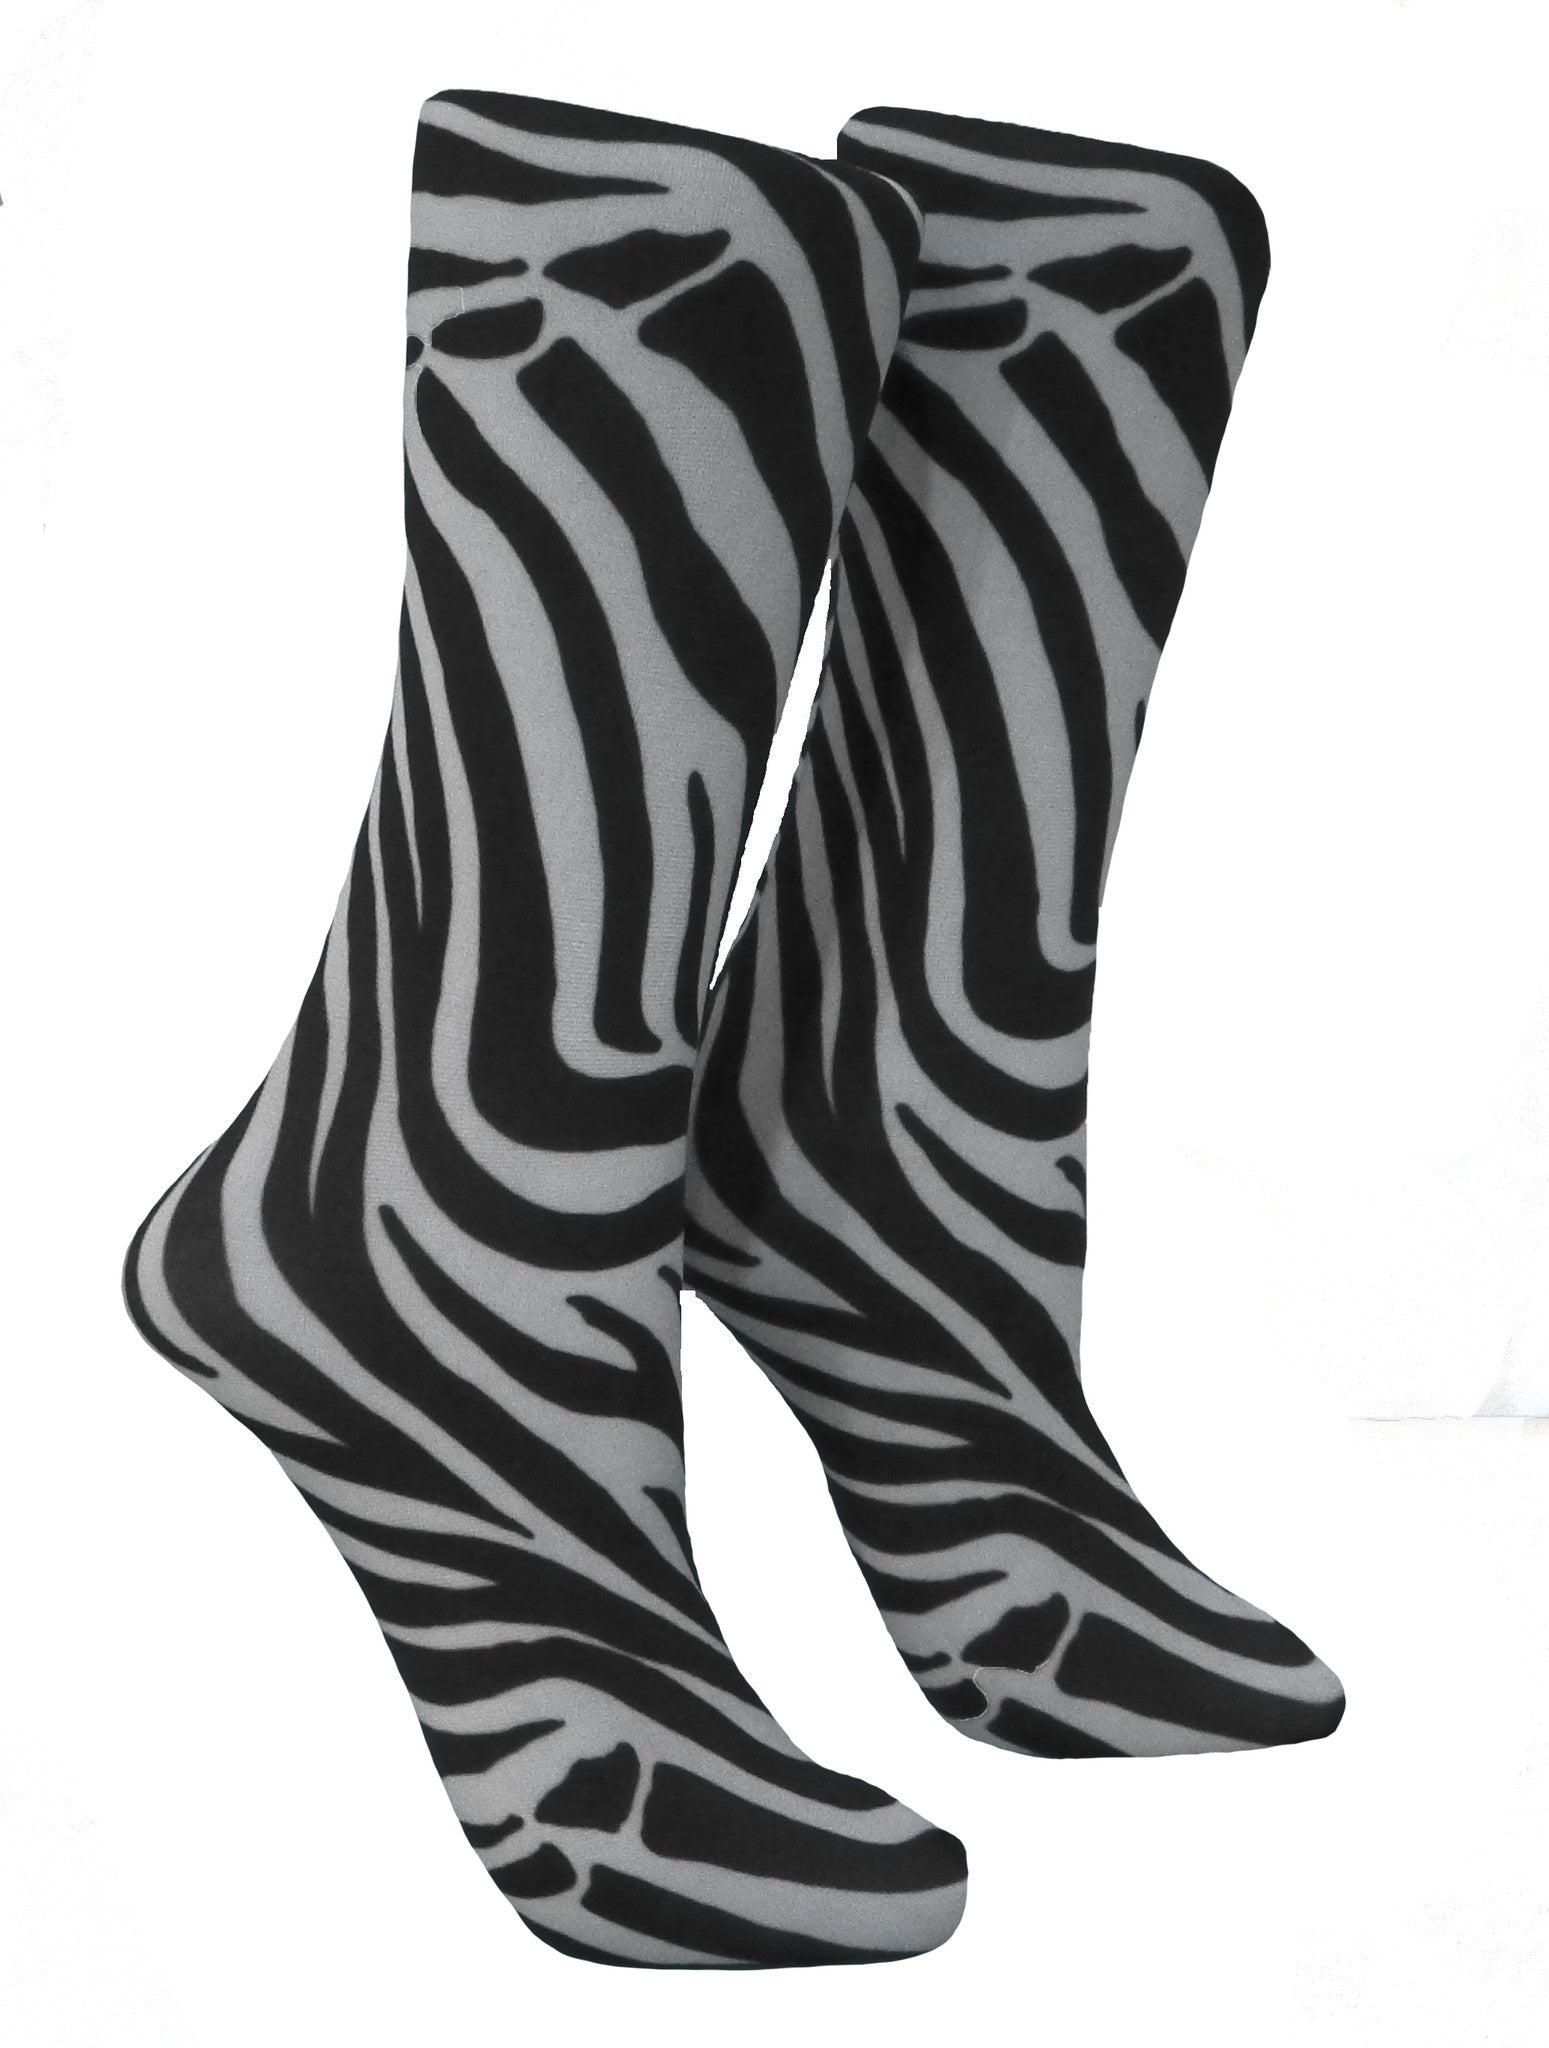 Soxtrot Knee High - Bengal Tiger White